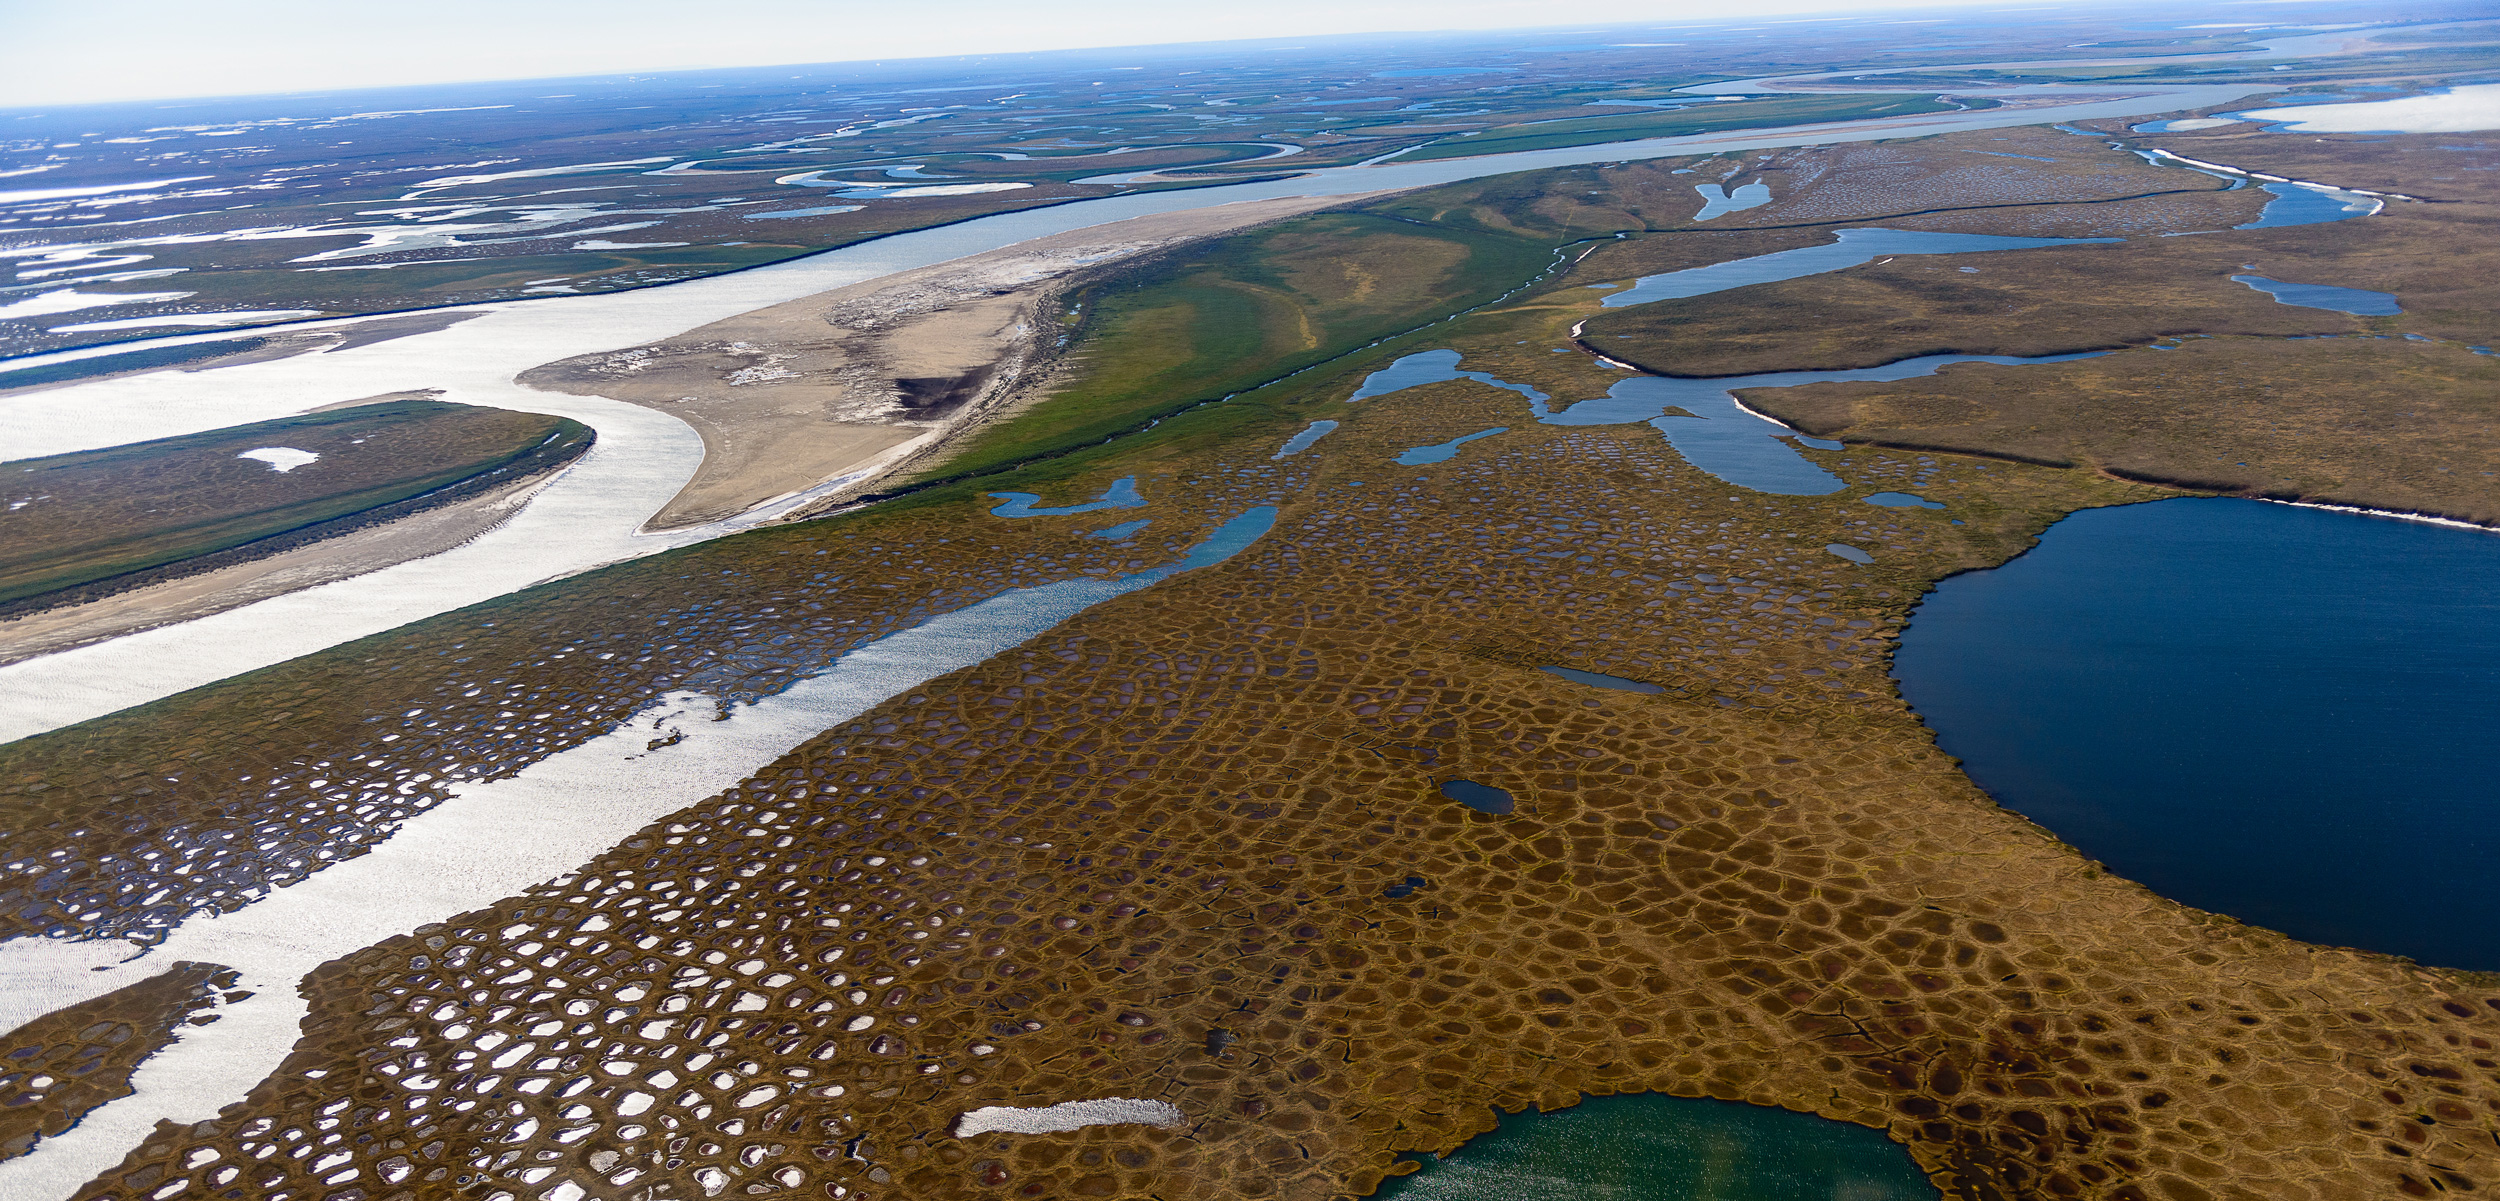 Thaw lakes and patterned ground surrounding the Colville River at the edge of the National Petroleum Reserve on Alaska's North Slope. More than 40 percent of the carbon dioxide entering the atmosphere from the Arctic comes from its surface waters.